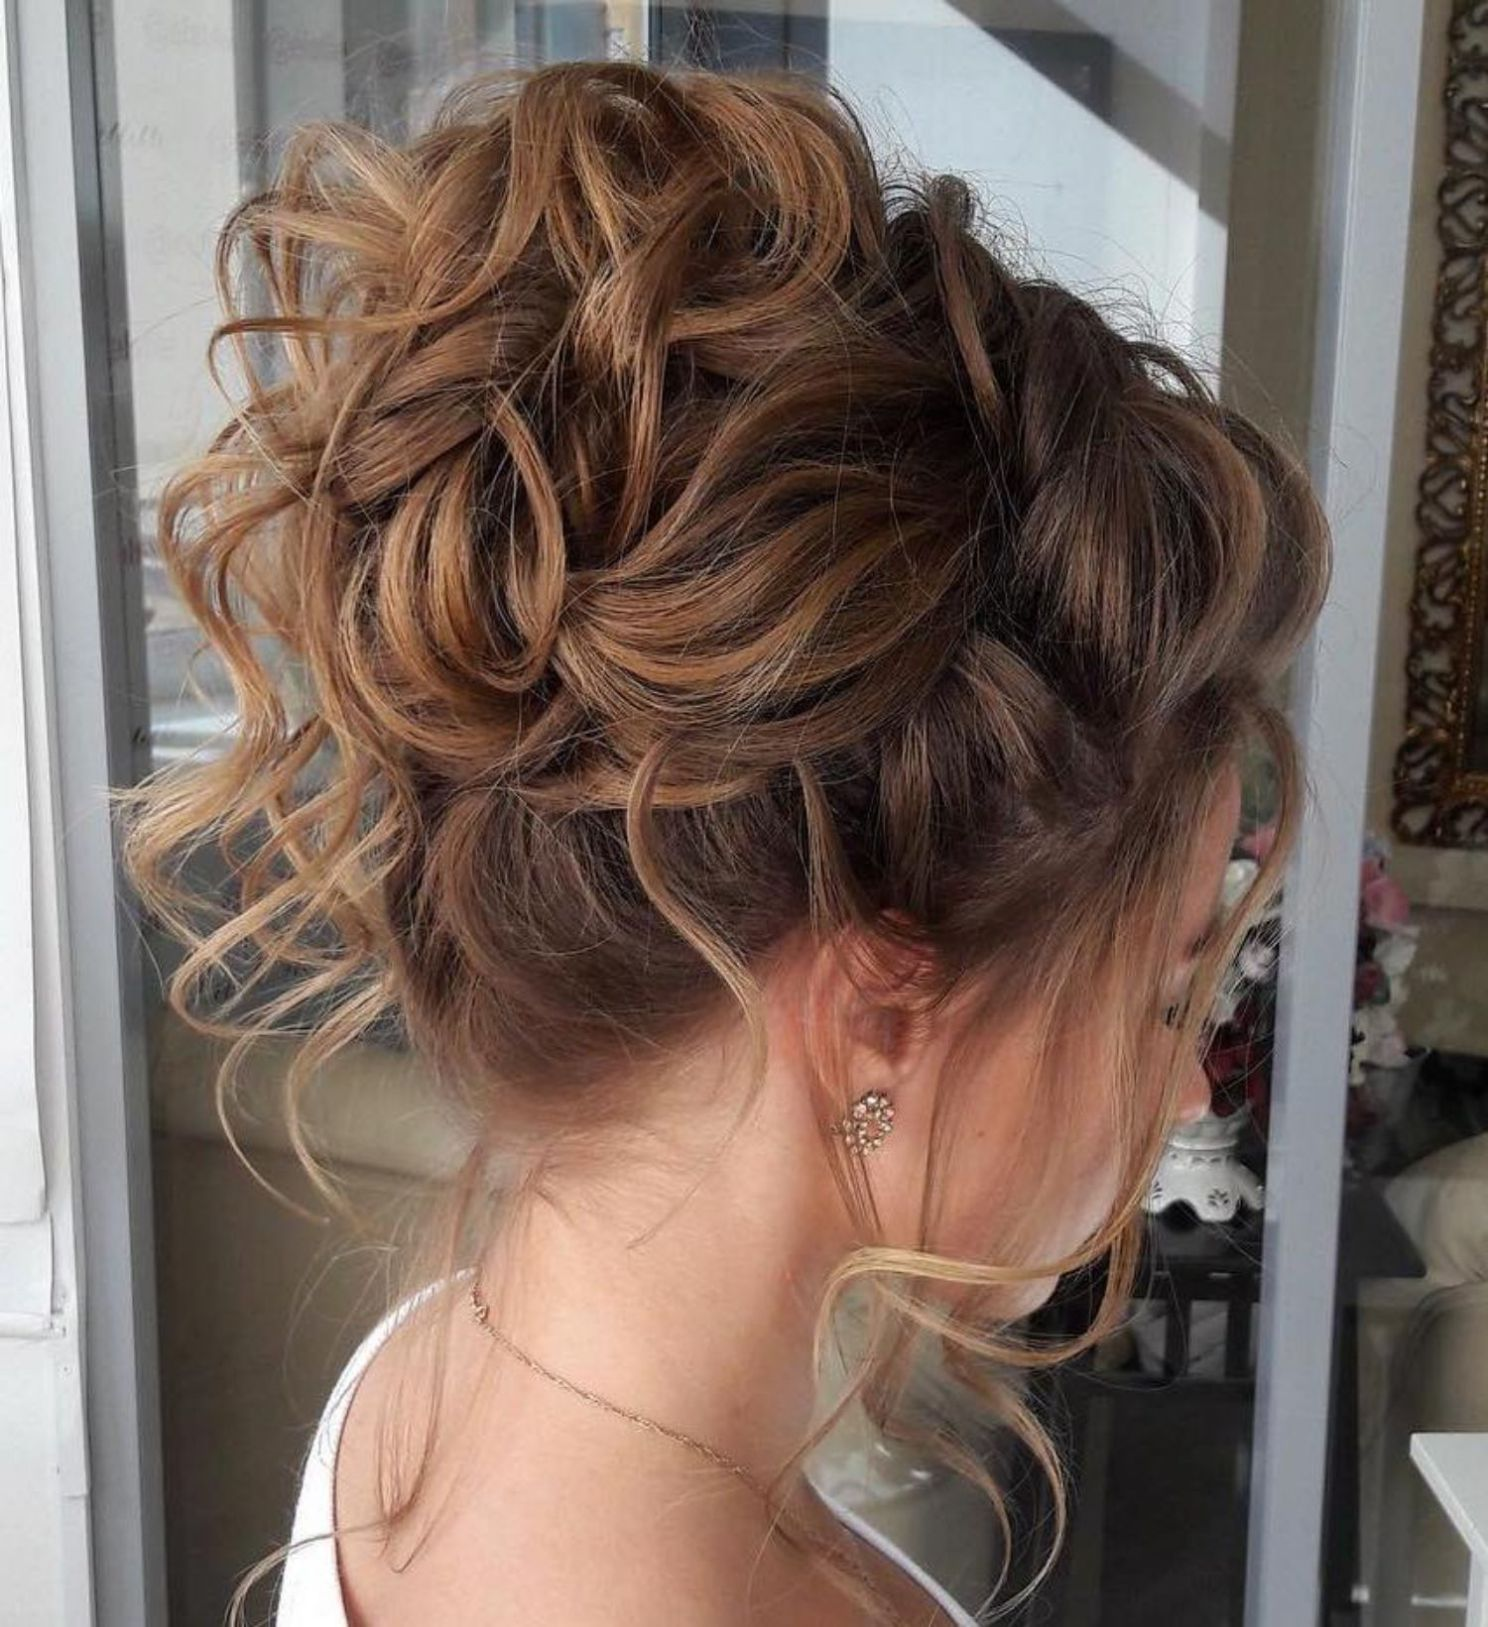 40 creative updos for curly hair in 2019 | hair styles